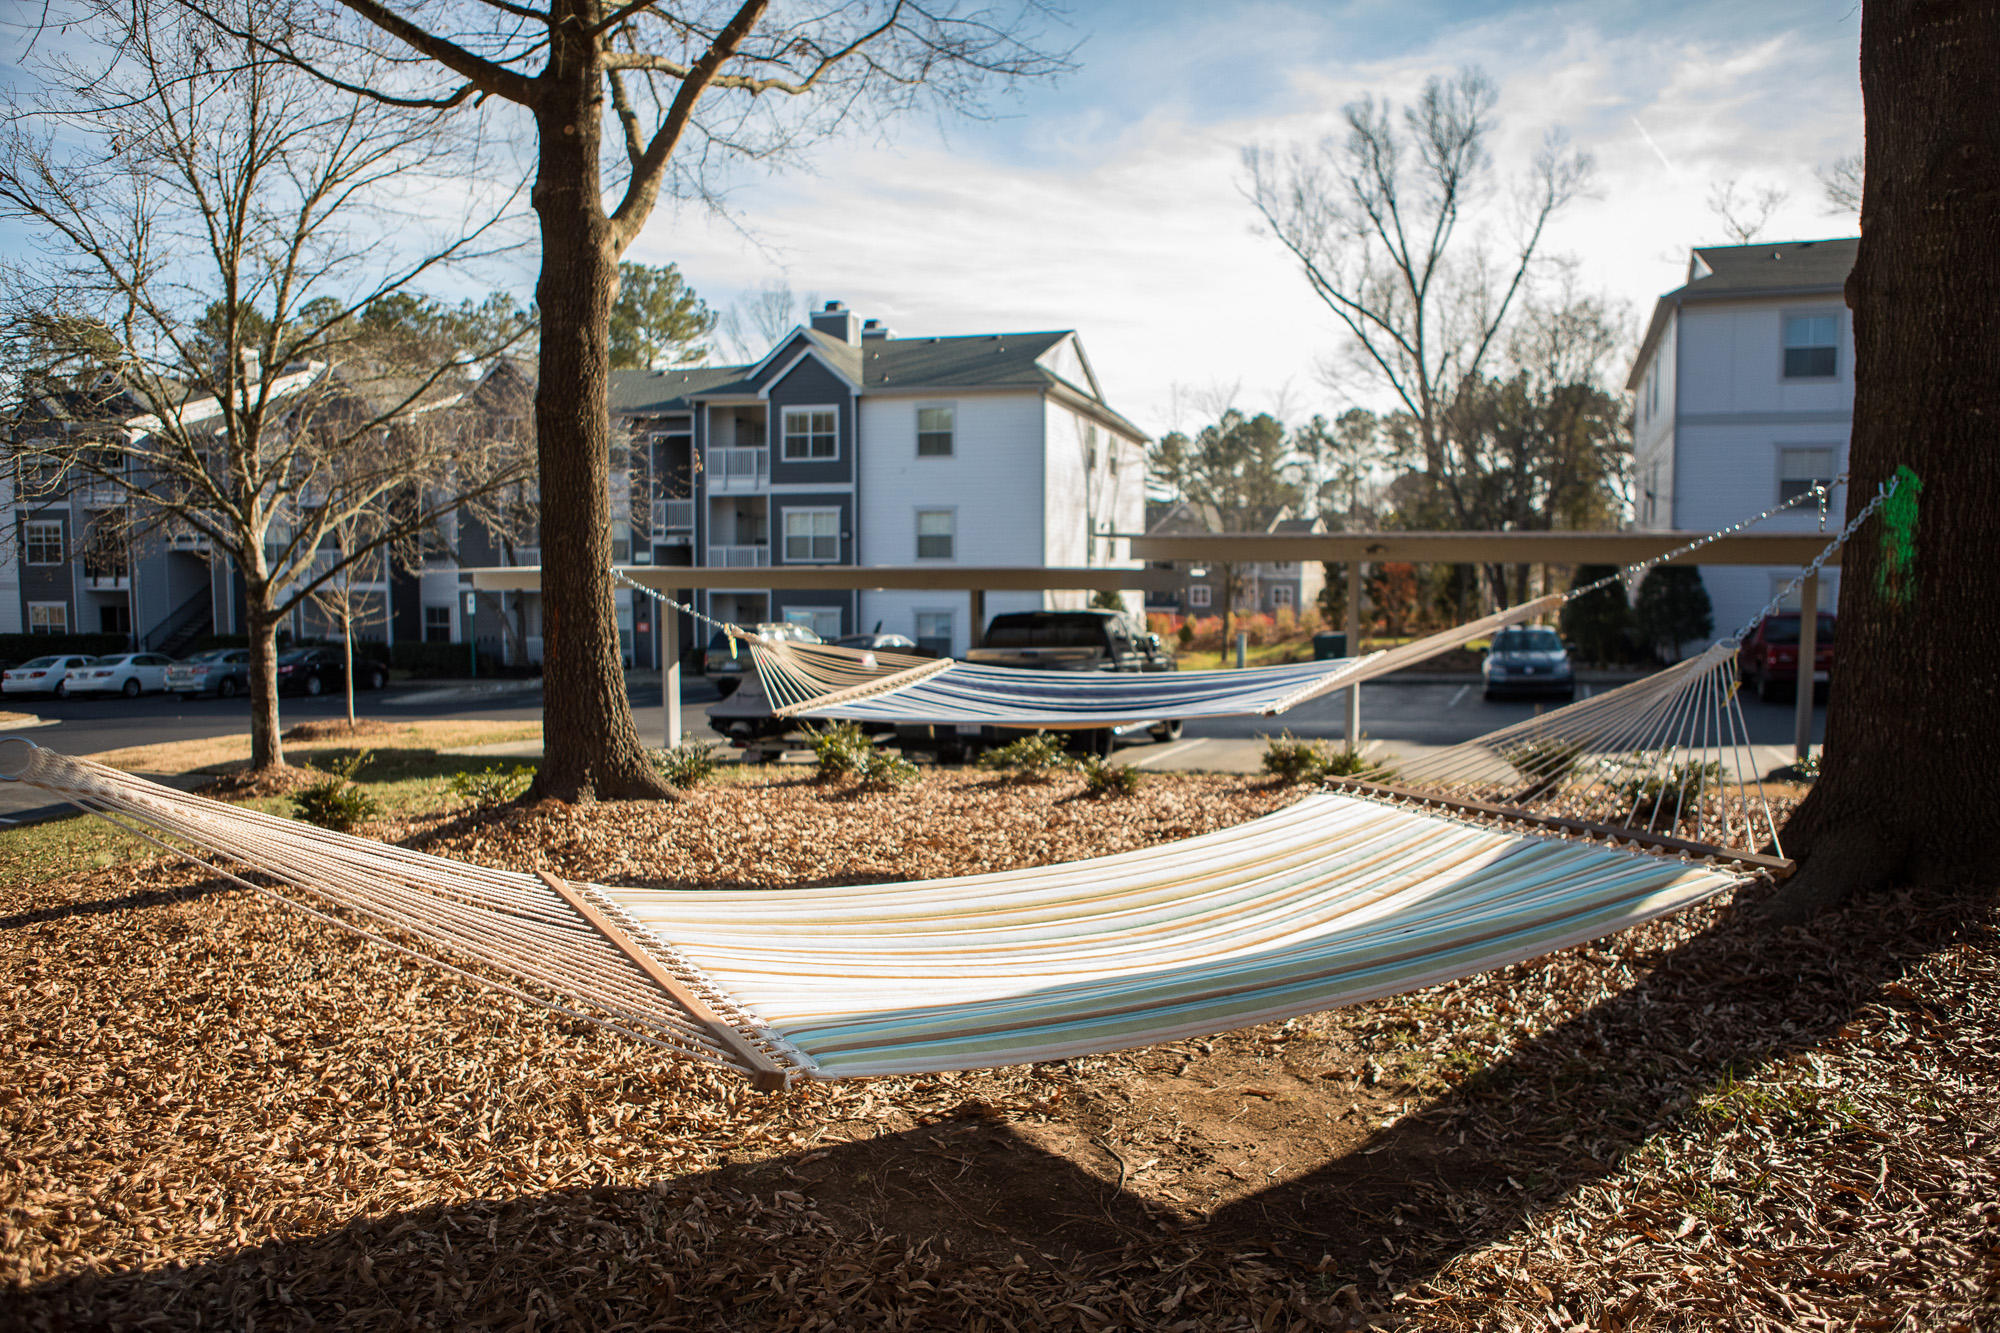 Arboretum at Southpoint by Cortland image 5